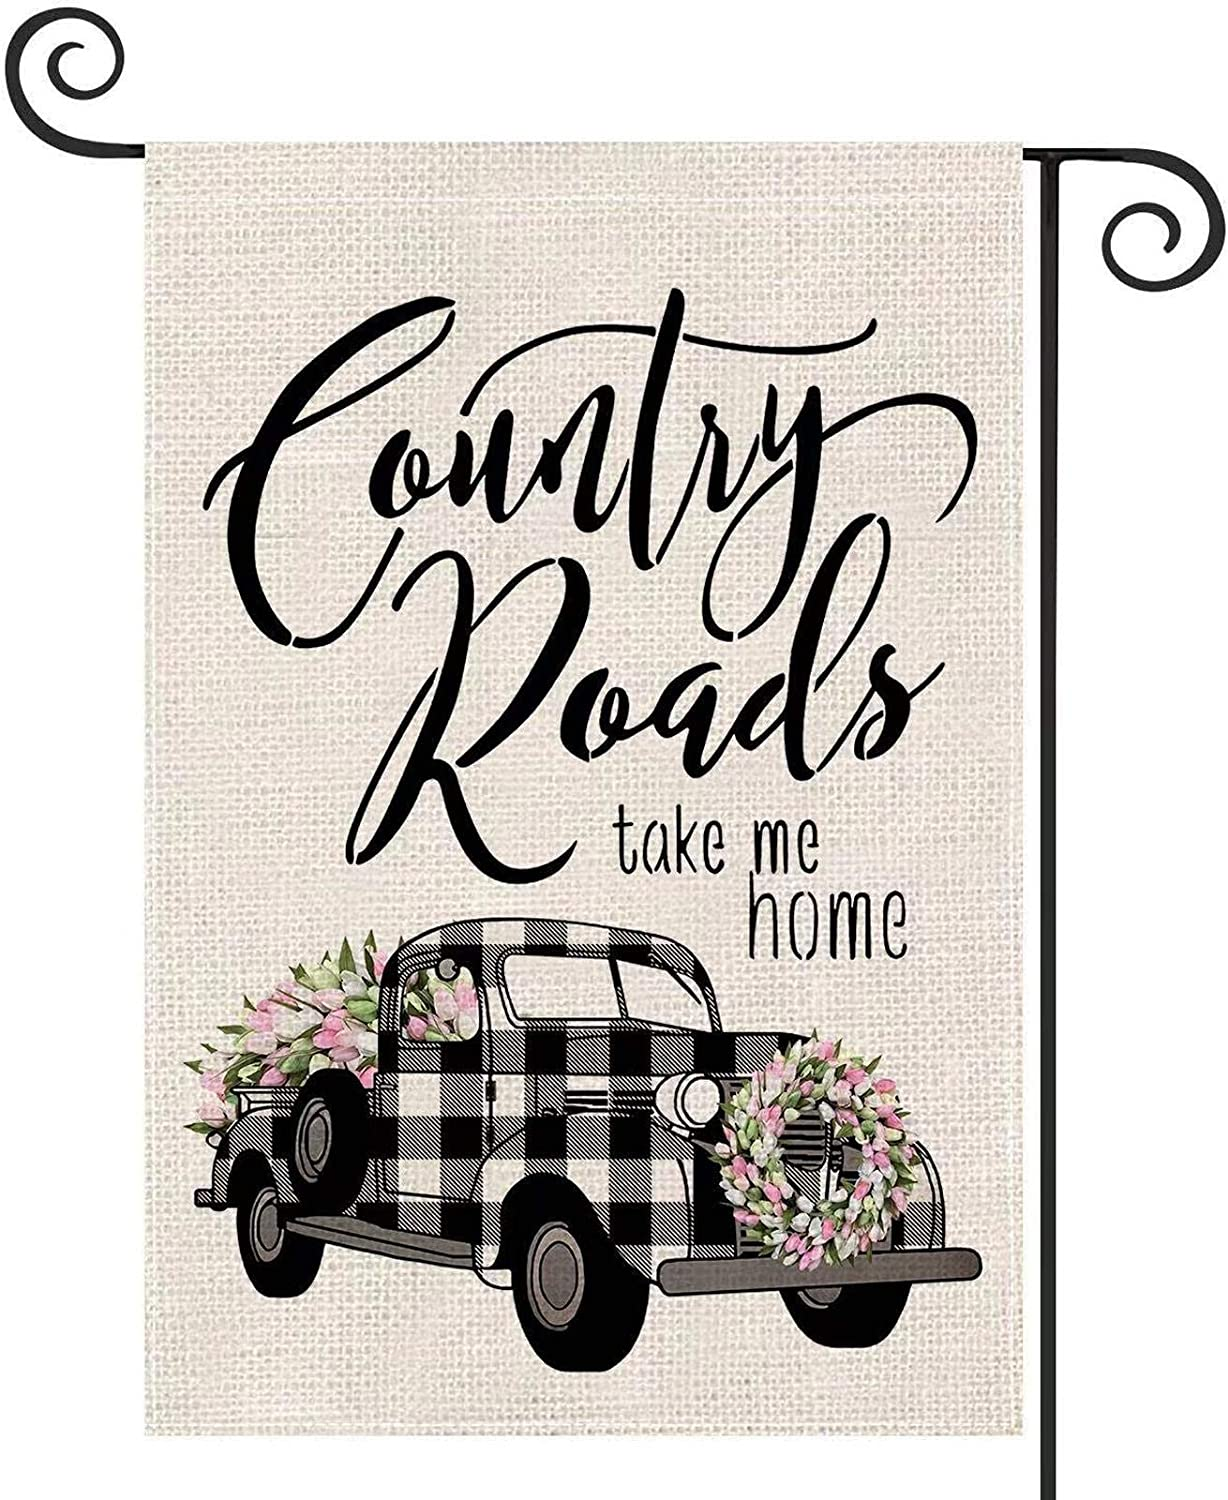 EKOREST Summer Garden Flag Buffalo Plaid Truck with Tulip Wreath,12 x 18 Vertical Double Sided, Country Roads Take Me Home Yard flags for All Seasons,Small spring and summer Flag for Farmhouse Outdoor